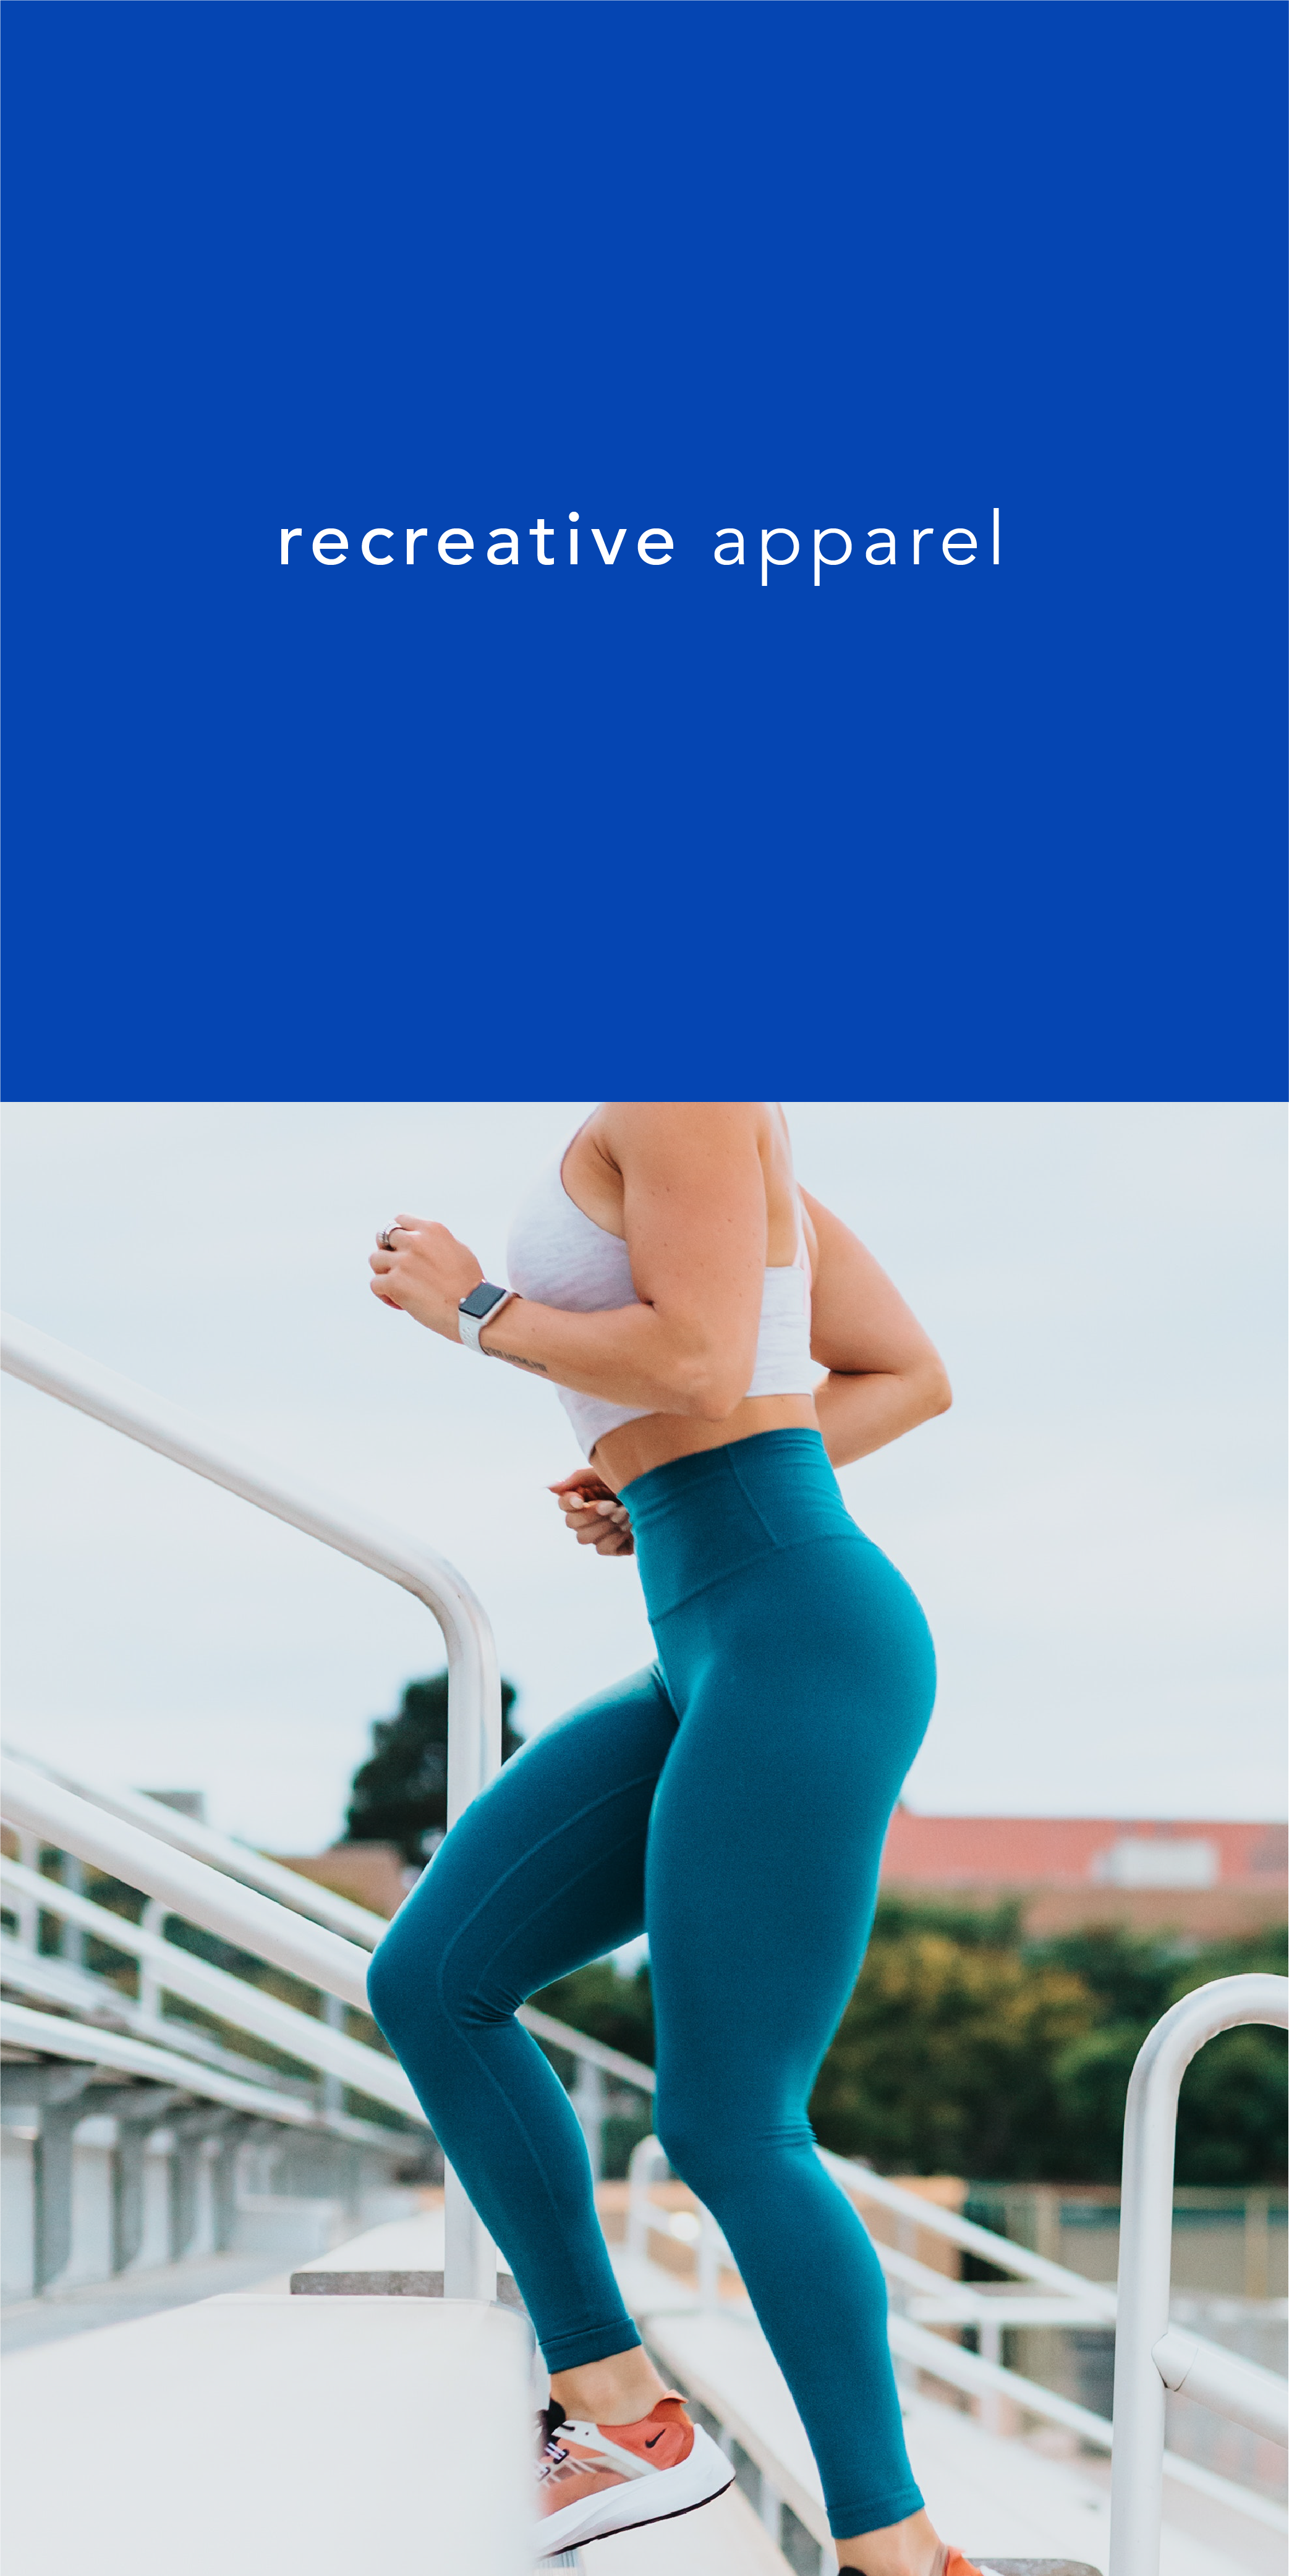 Recreative Apparel logo in bright blue and a photo of someone running up stairs